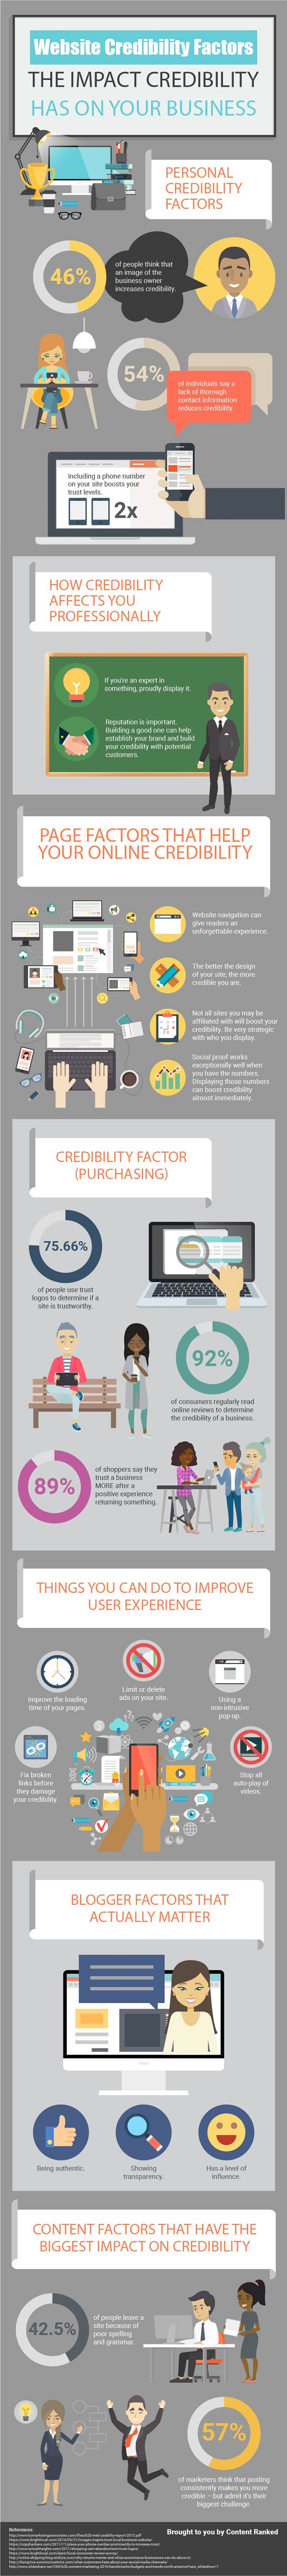 Credibility Factors That Impact the Success of Your Website [Infographic]